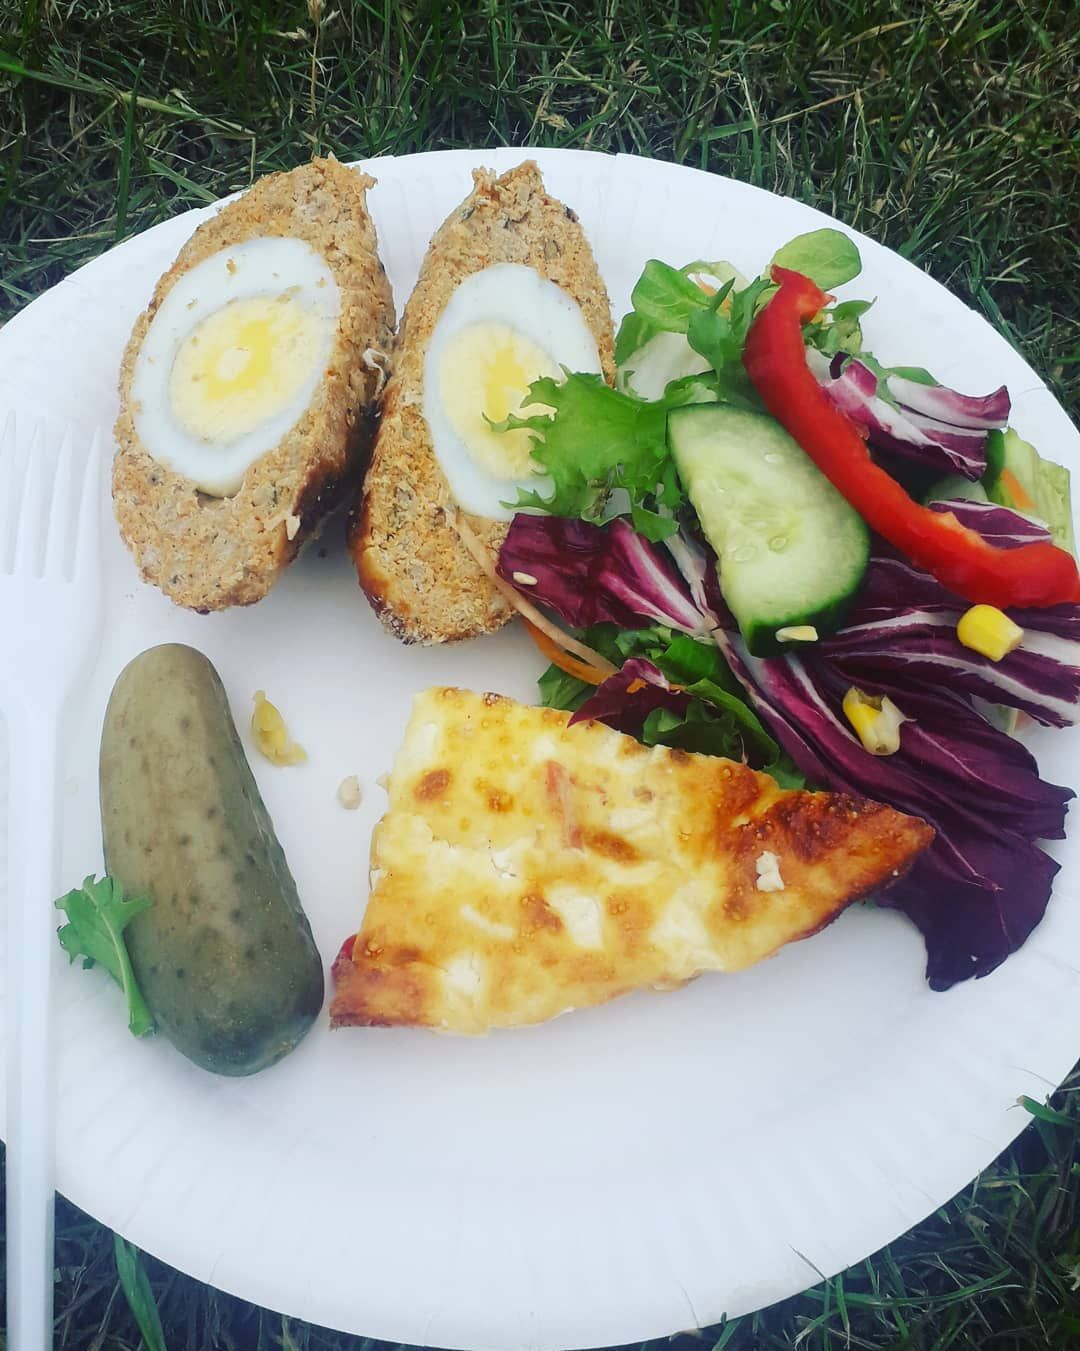 Picnic in the park. Scotch eggs 1 syn using slimming world sausages- skin removed. . . .  park  parklife  dietplan  diet  weightloss  myjourney  slim  beachbody  fit  exercise  salad  hiit  health  slimming  healthy  swuk  exercise  health  slimming  sw  slimmingworld  slimmingworldmember #scotcheggs Picnic in the park. Scotch eggs 1 syn using slimming world sausages- skin removed. . . .  park  parklife  dietplan  diet  weightloss  myjourney  slim  beachbody  fit  exercise  salad  hiit  health #scotcheggs